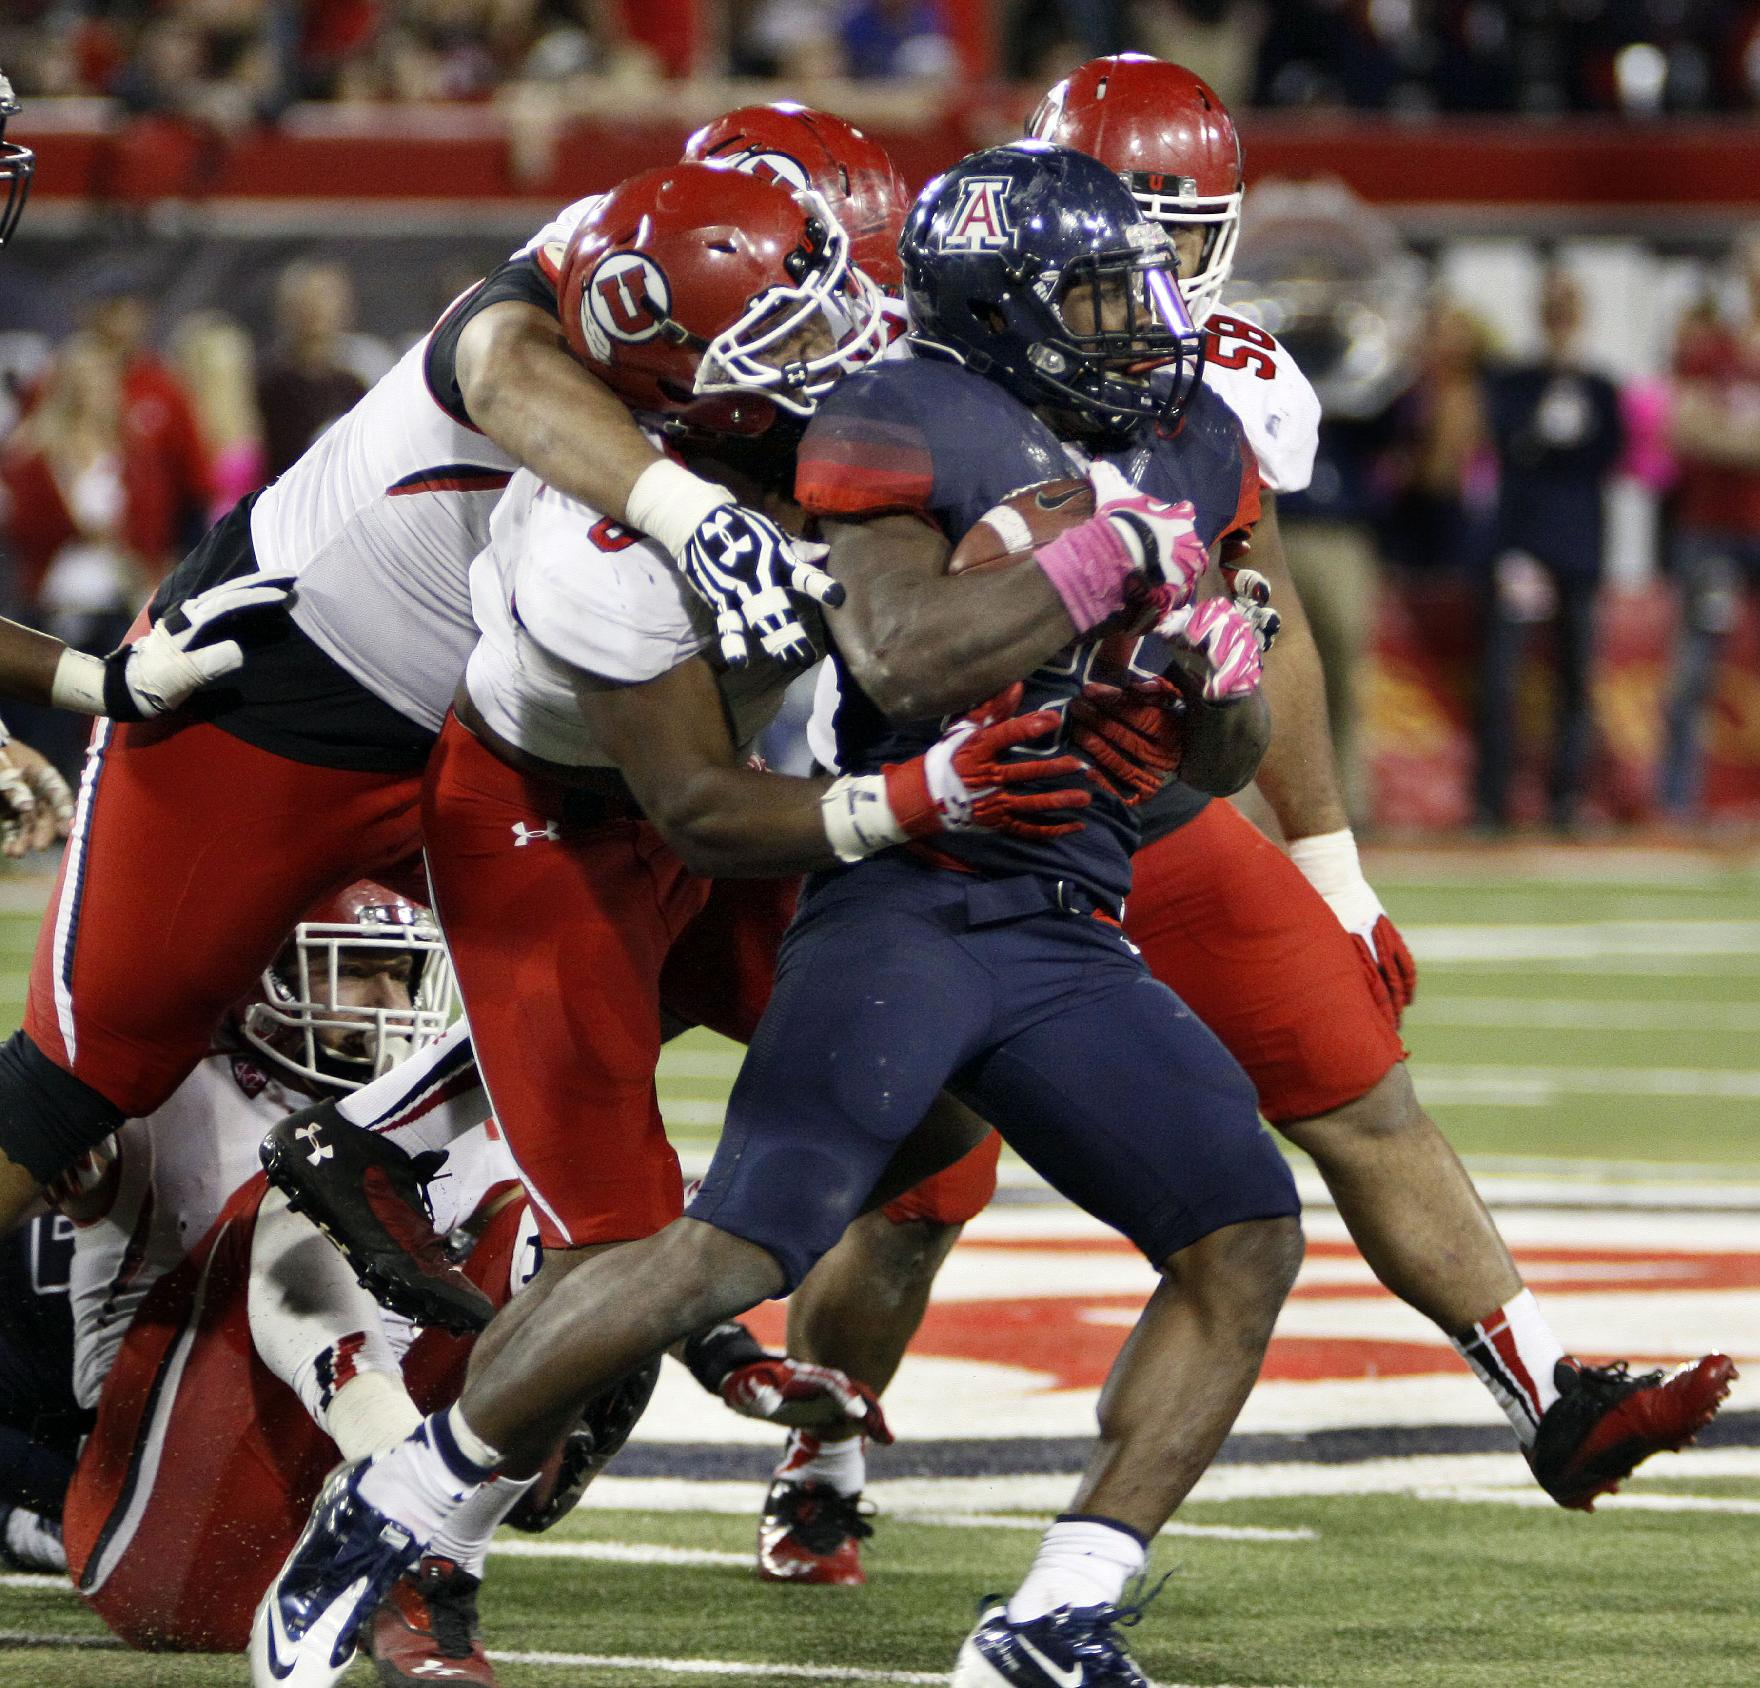 Arizona's Ka'Deem Carey (25) is gang tackled by Utah's Nate Orchard (8), Tenny Palepoi, left, and Junior Salt (59) in the second half of an NCAA college football game, Saturday, Oct. 19, 2013 in Tucson, Ariz.  Arizona won 35 - 24